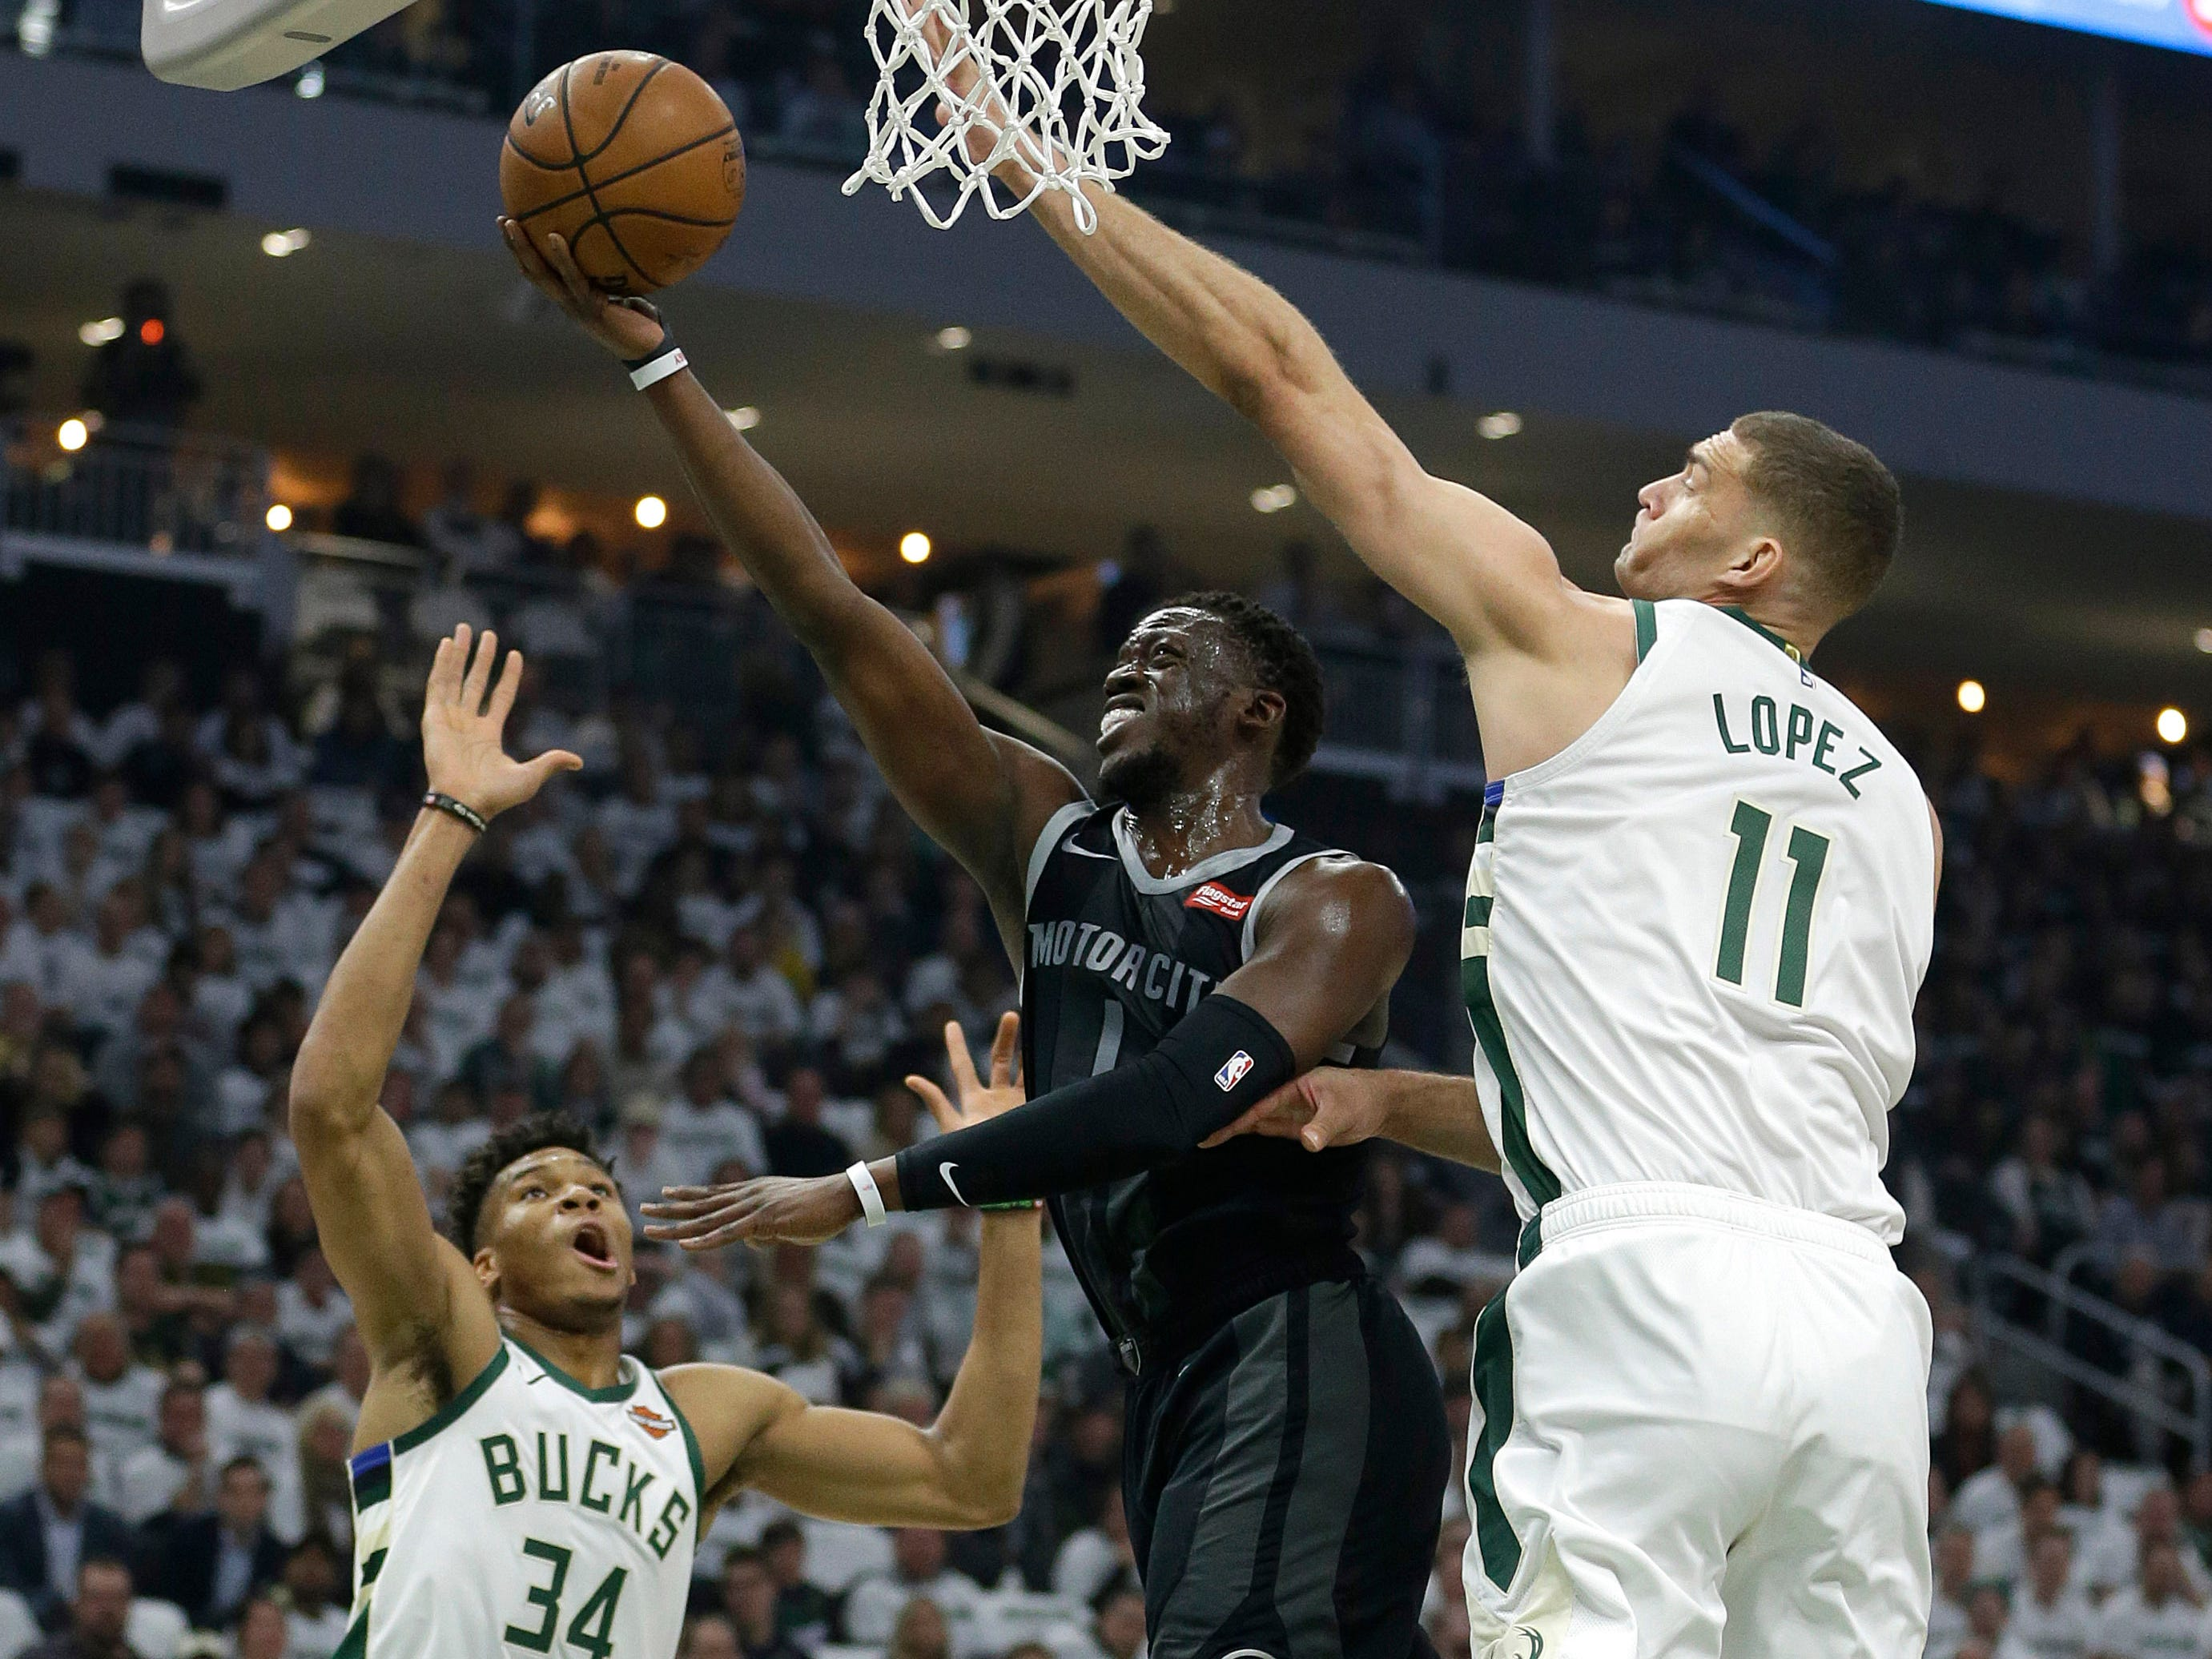 Detroit Pistons' Reggie Jackson shoots between Milwaukee Bucks' Brook Lopez (11) and Giannis Antetokounmpo (34) during the first half of Game 1 on Sunday, April 14, 2019, in Milwaukee.